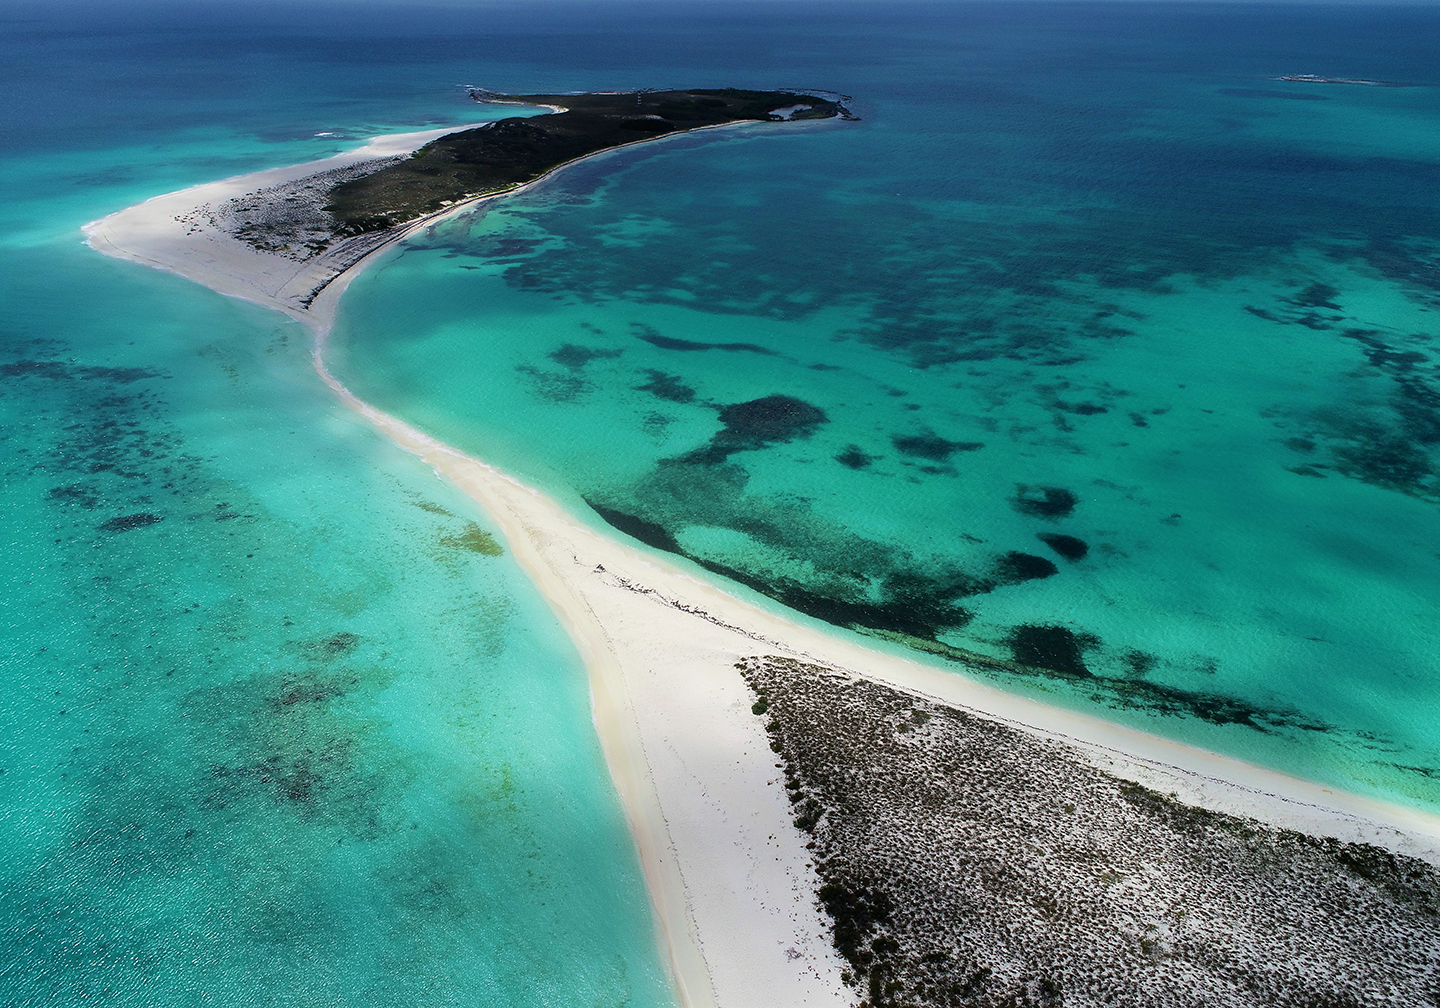 An aerial view of Los Roques, Venezuela, with white sands and shallow, turquoise water